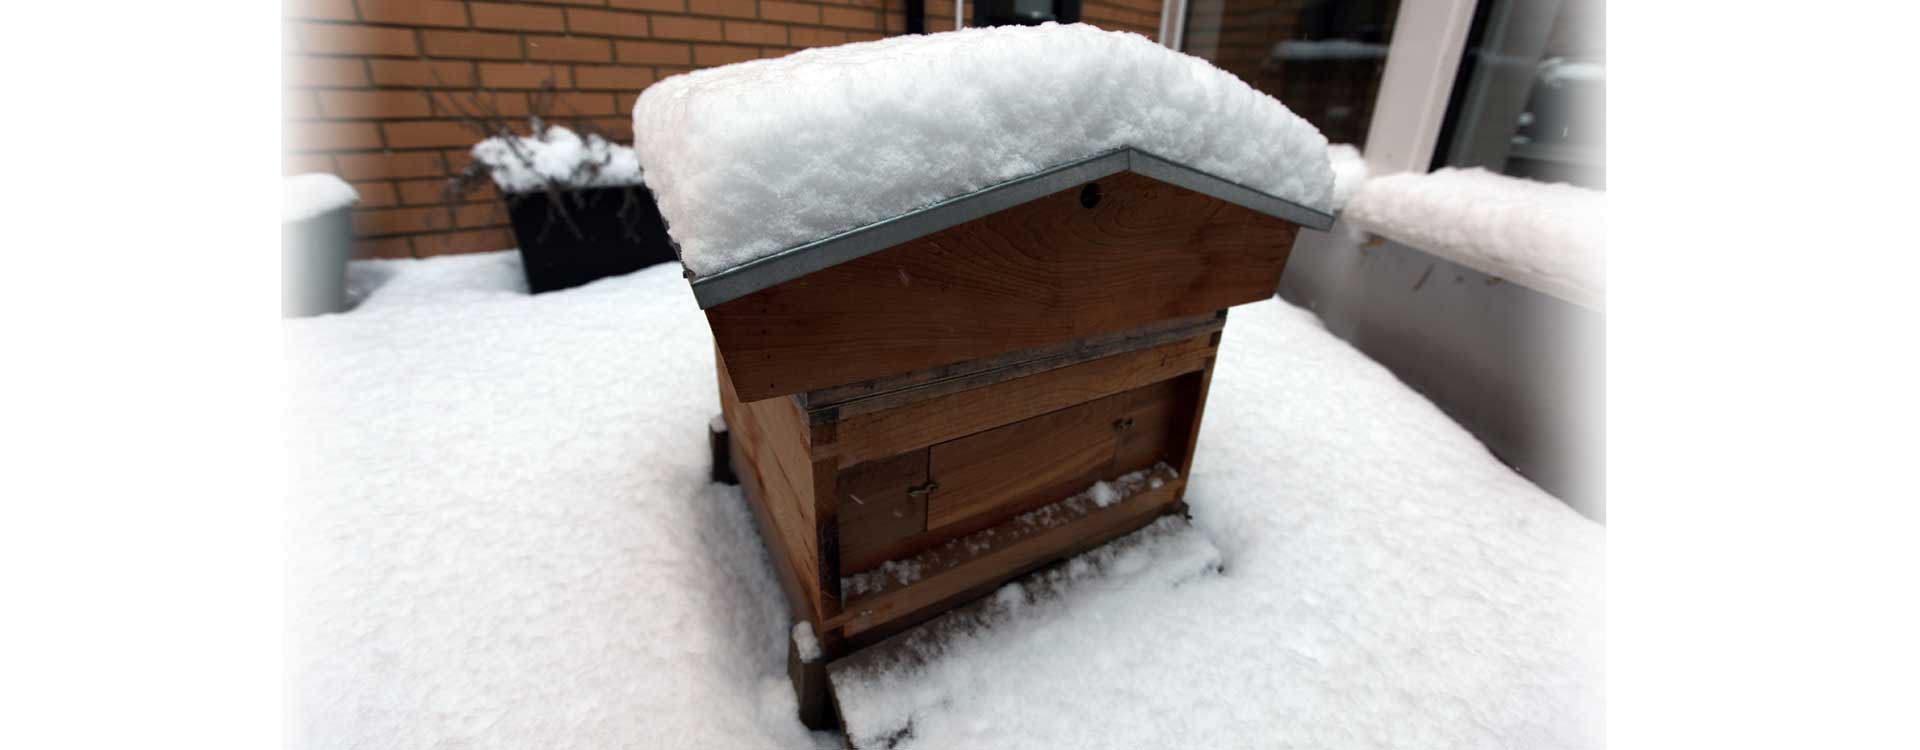 Snow-covered hive in winter